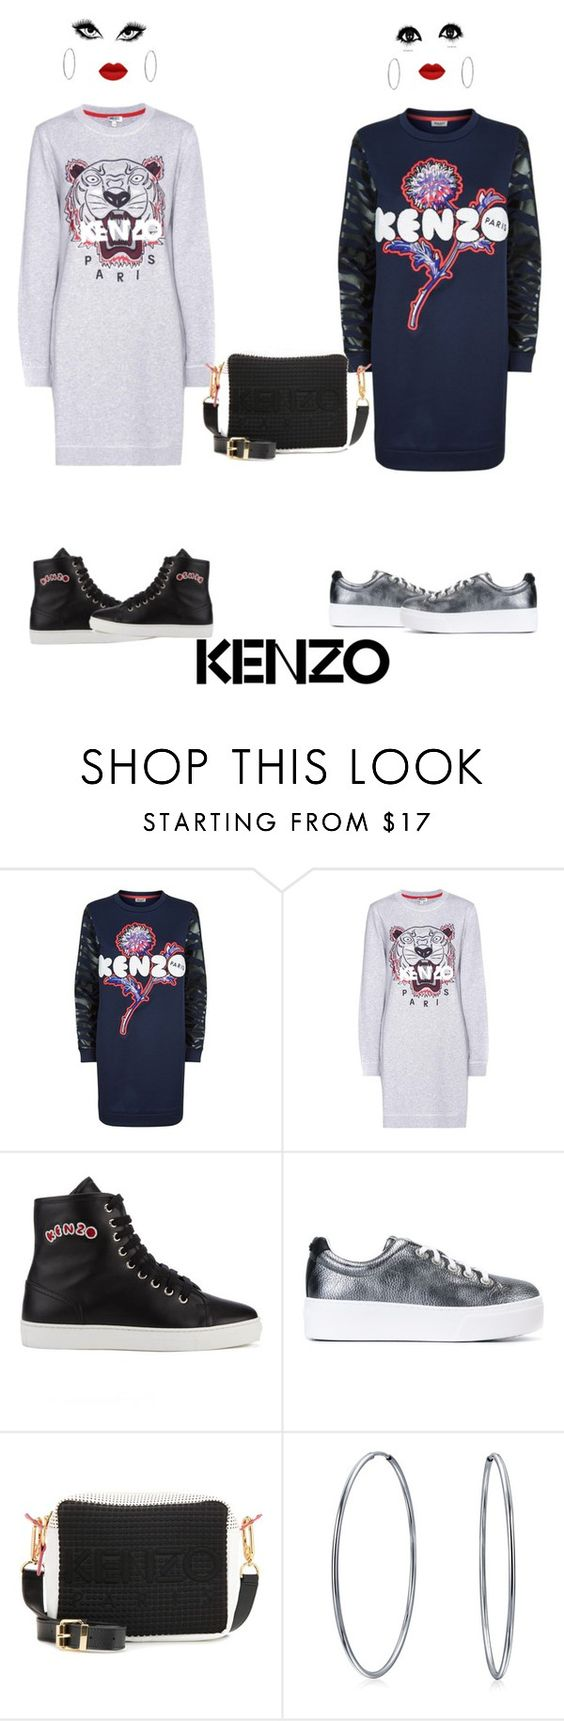 """""""Kenzo sweatshirt dress"""" by ms-hinds ❤ liked on Polyvore featuring Kenzo and Bling Jewelry"""